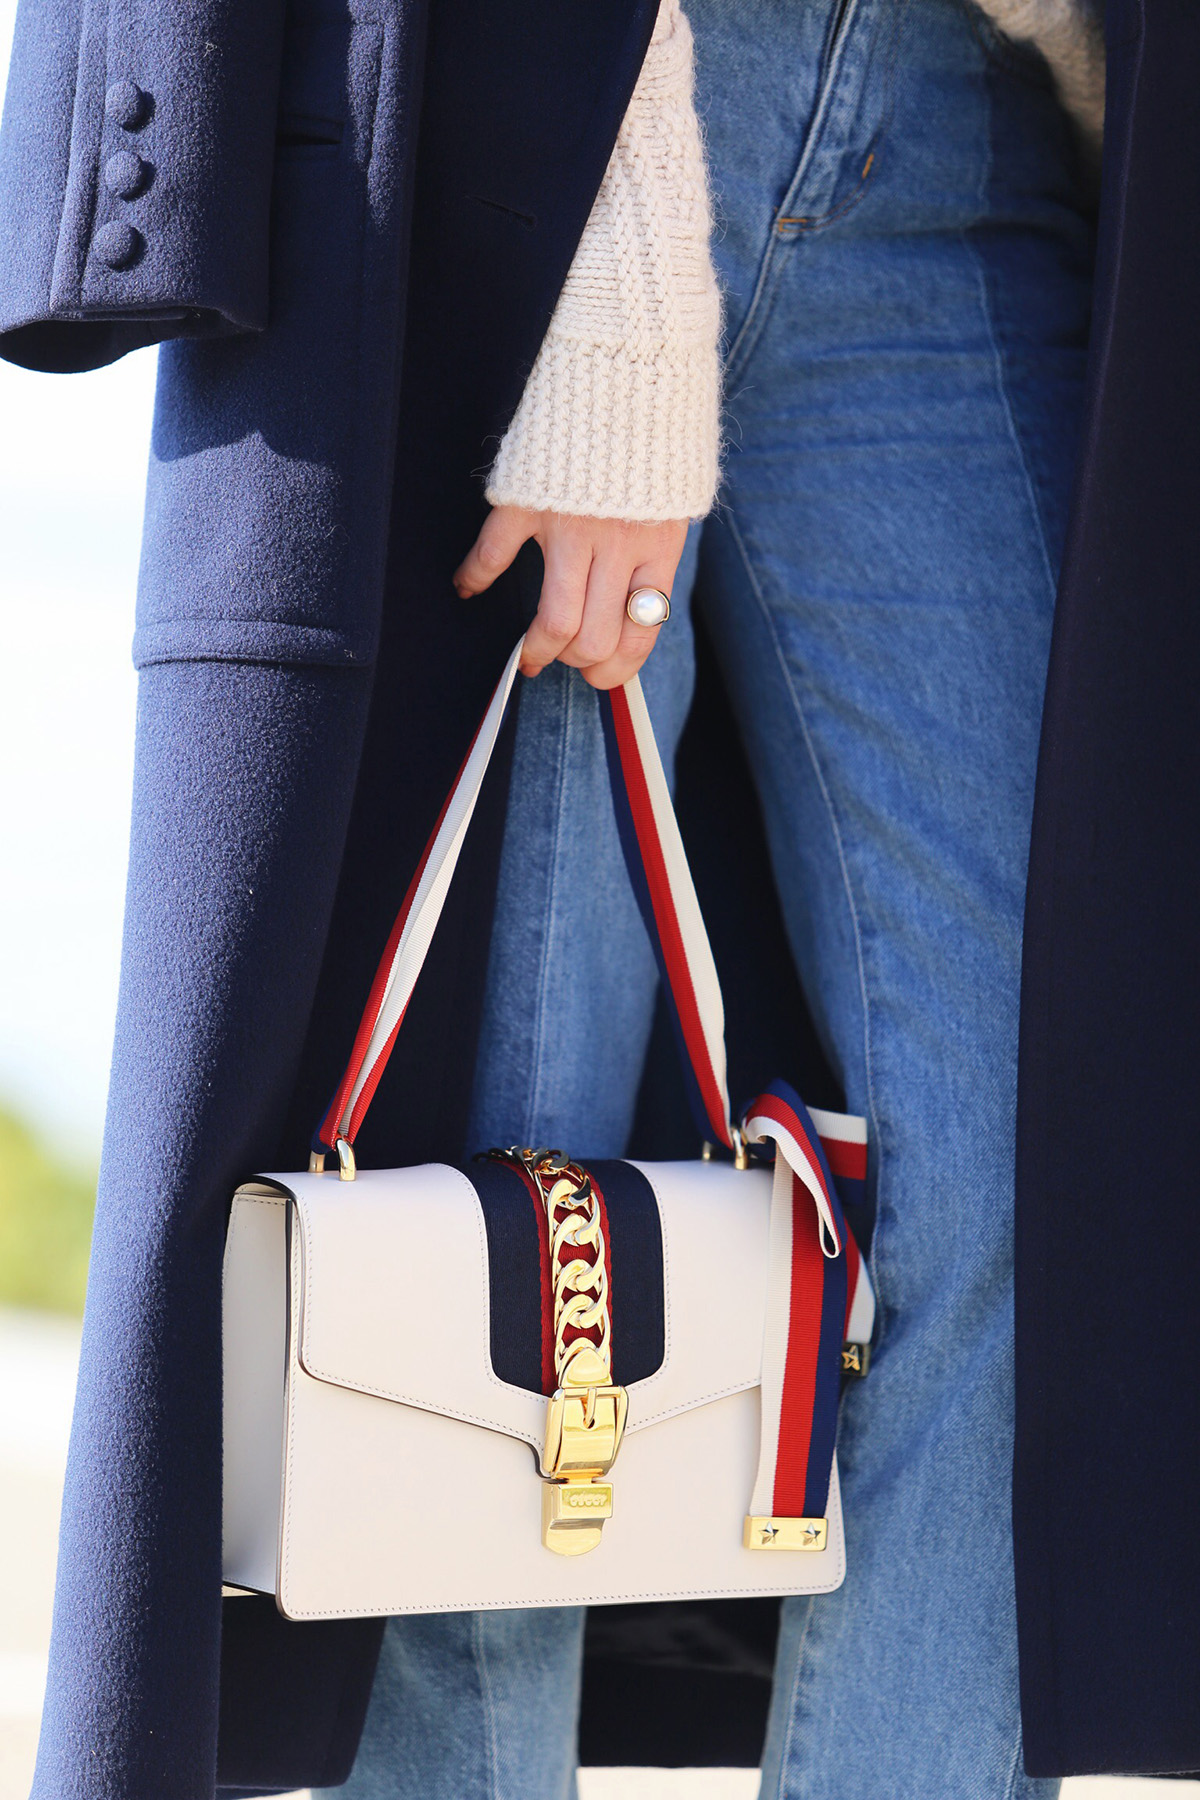 Navy Blue Coat & Gucci Sylvie Bag